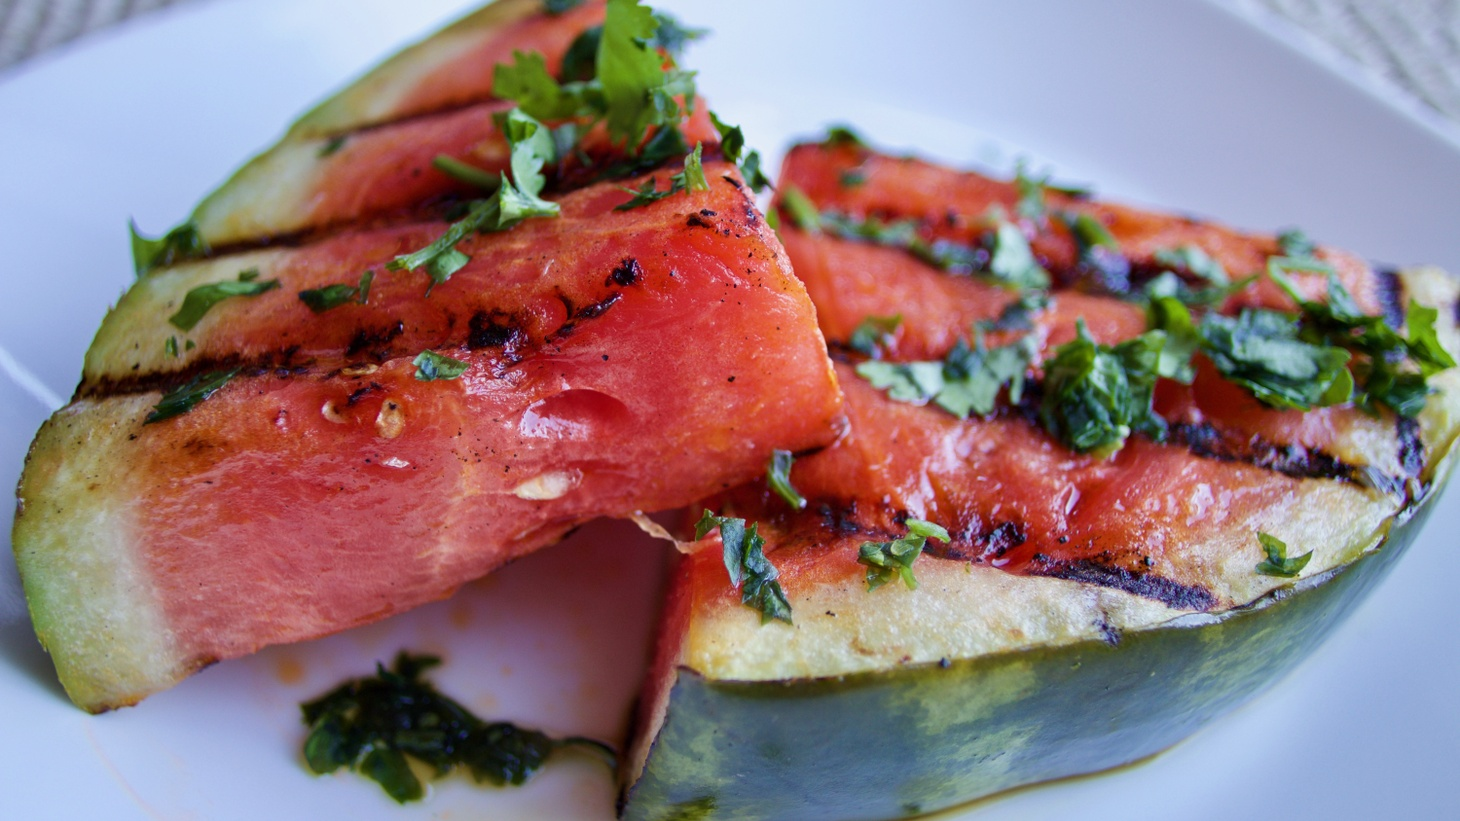 Evan Kleiman says you can grill all sorts of fruit, including watermelon.